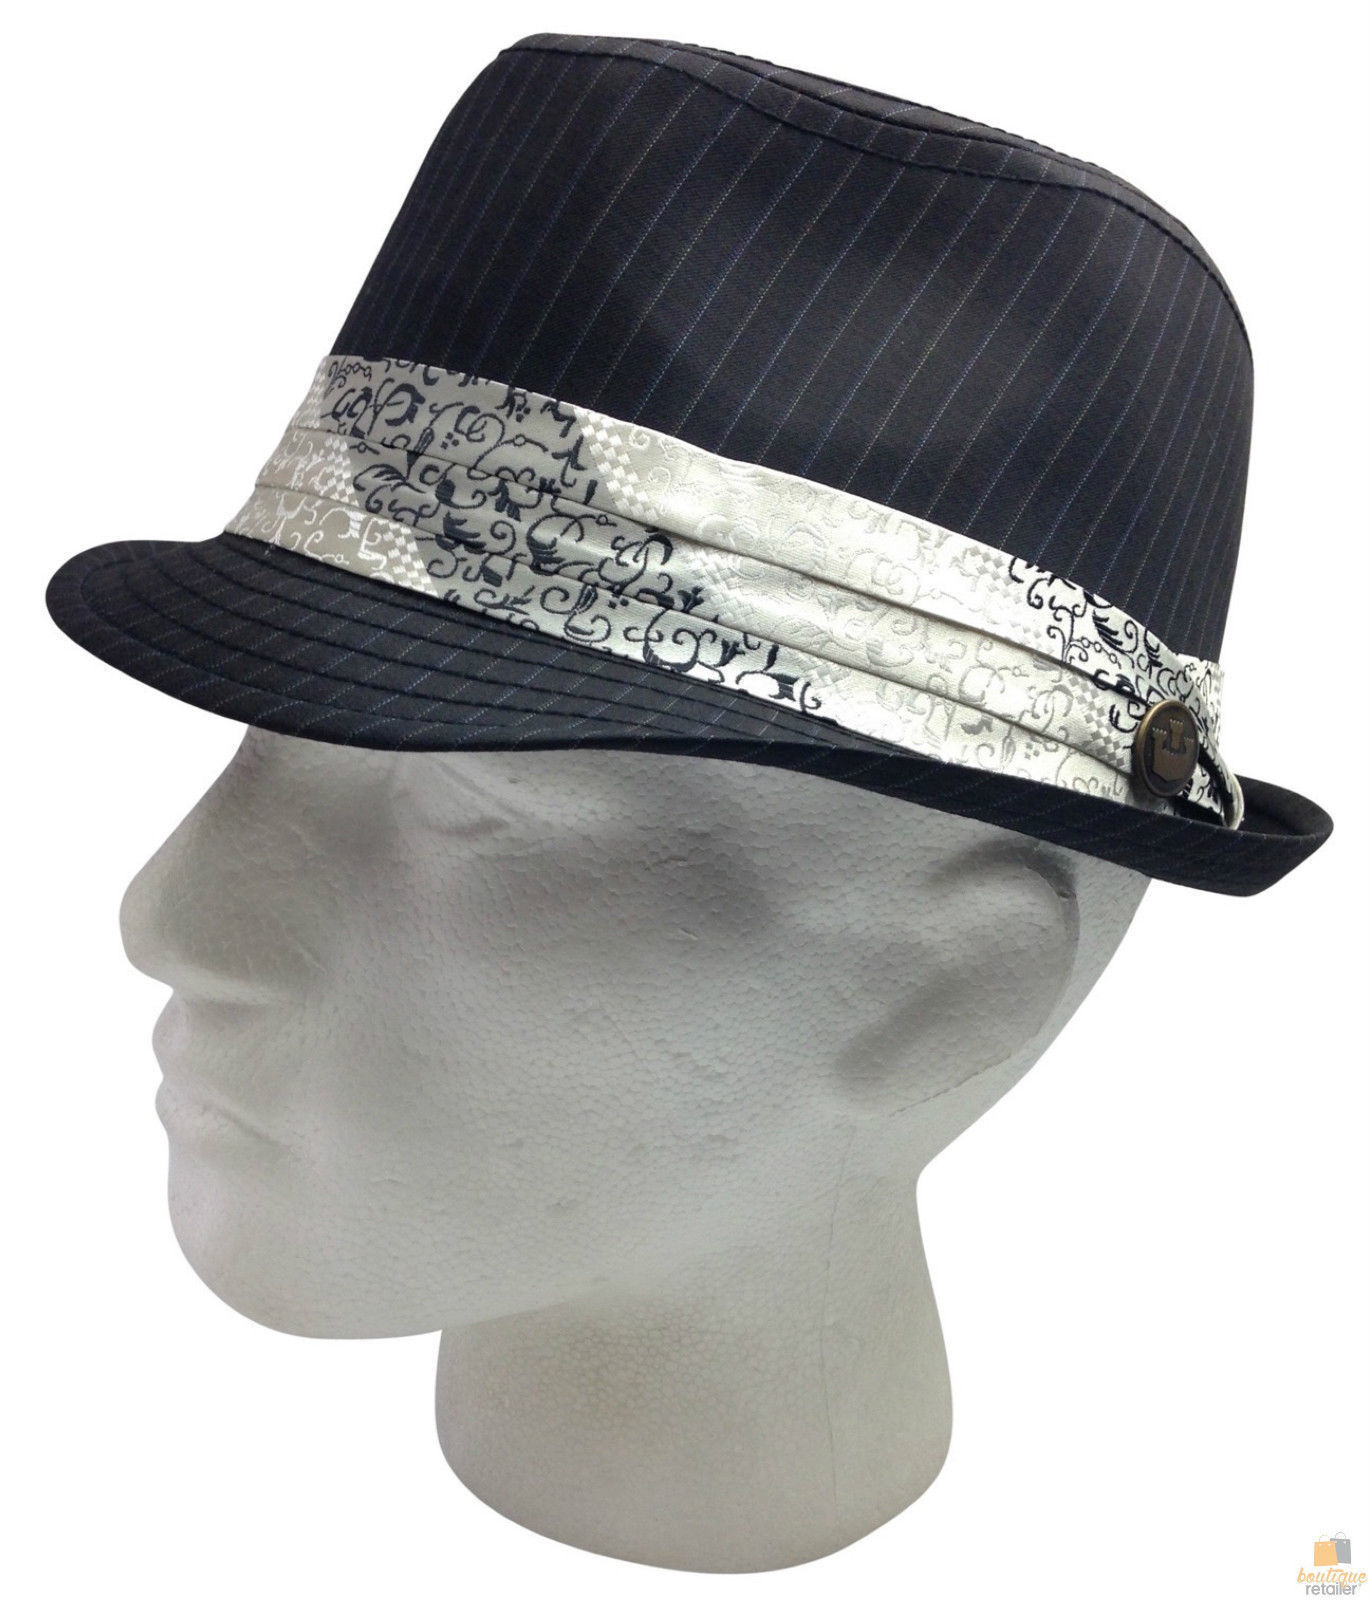 h m s Remaining. GOORIN BROTHERS Moretti Trilby Fedora Hat Bros Wool ... 4f5c988c5d2